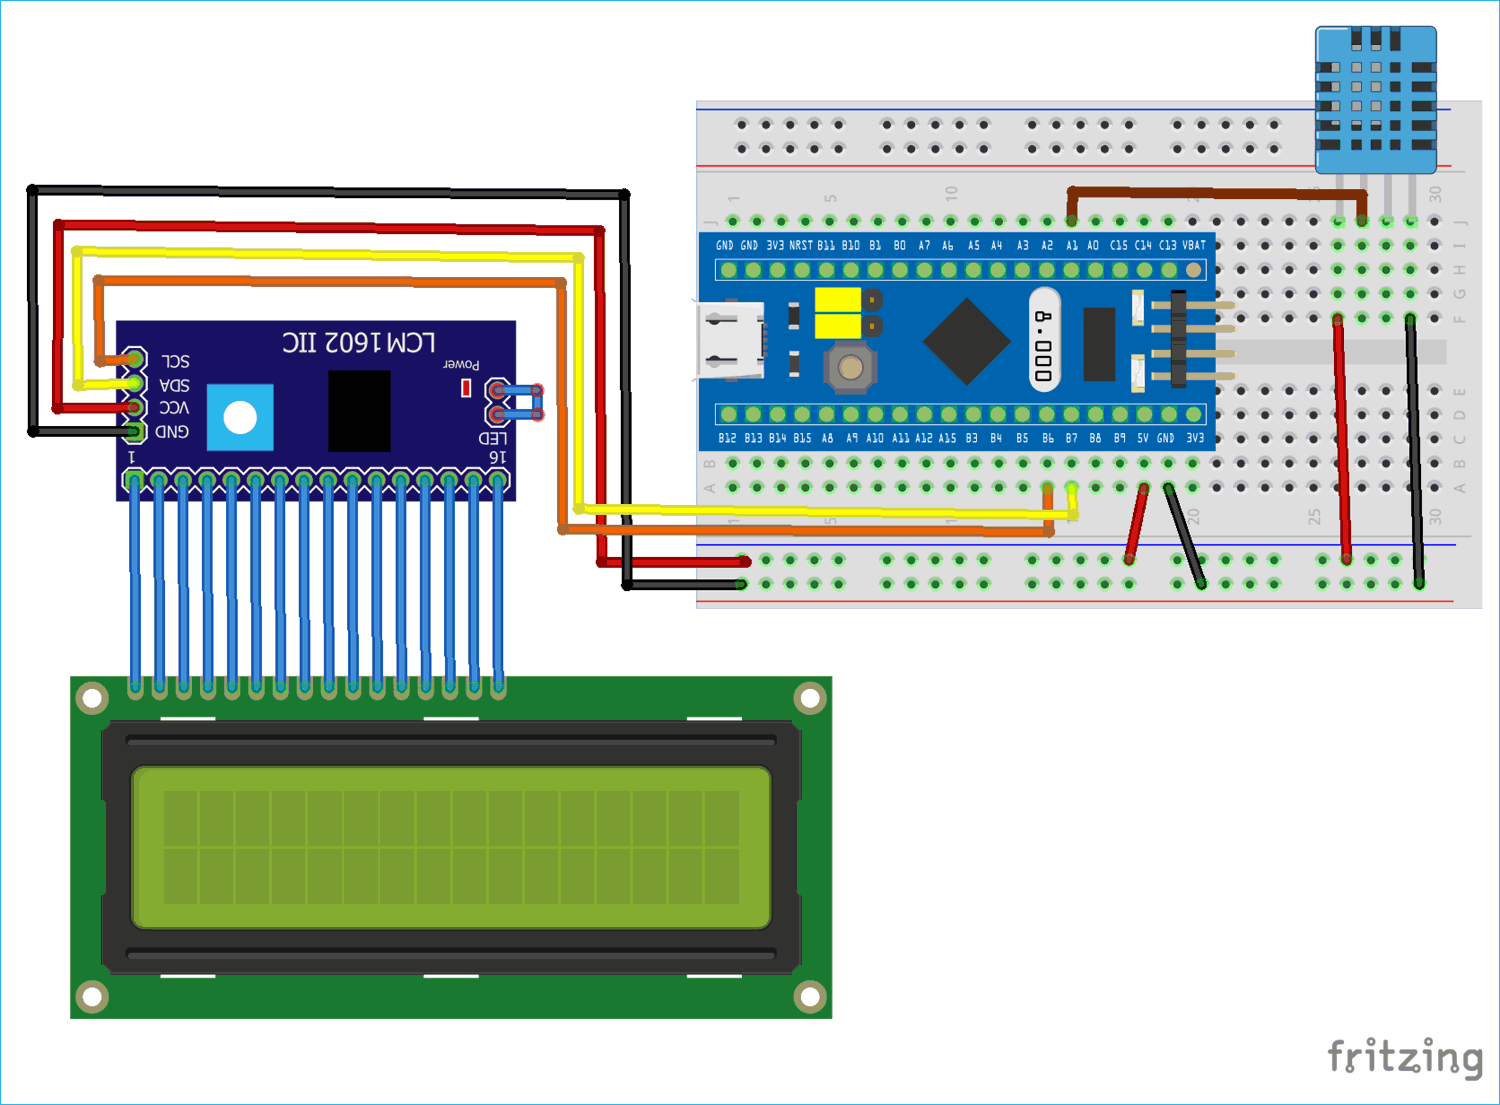 Circuit Diagram for Interfacing DHT11 Temperature & Humidity Sensor with STM32F103C8